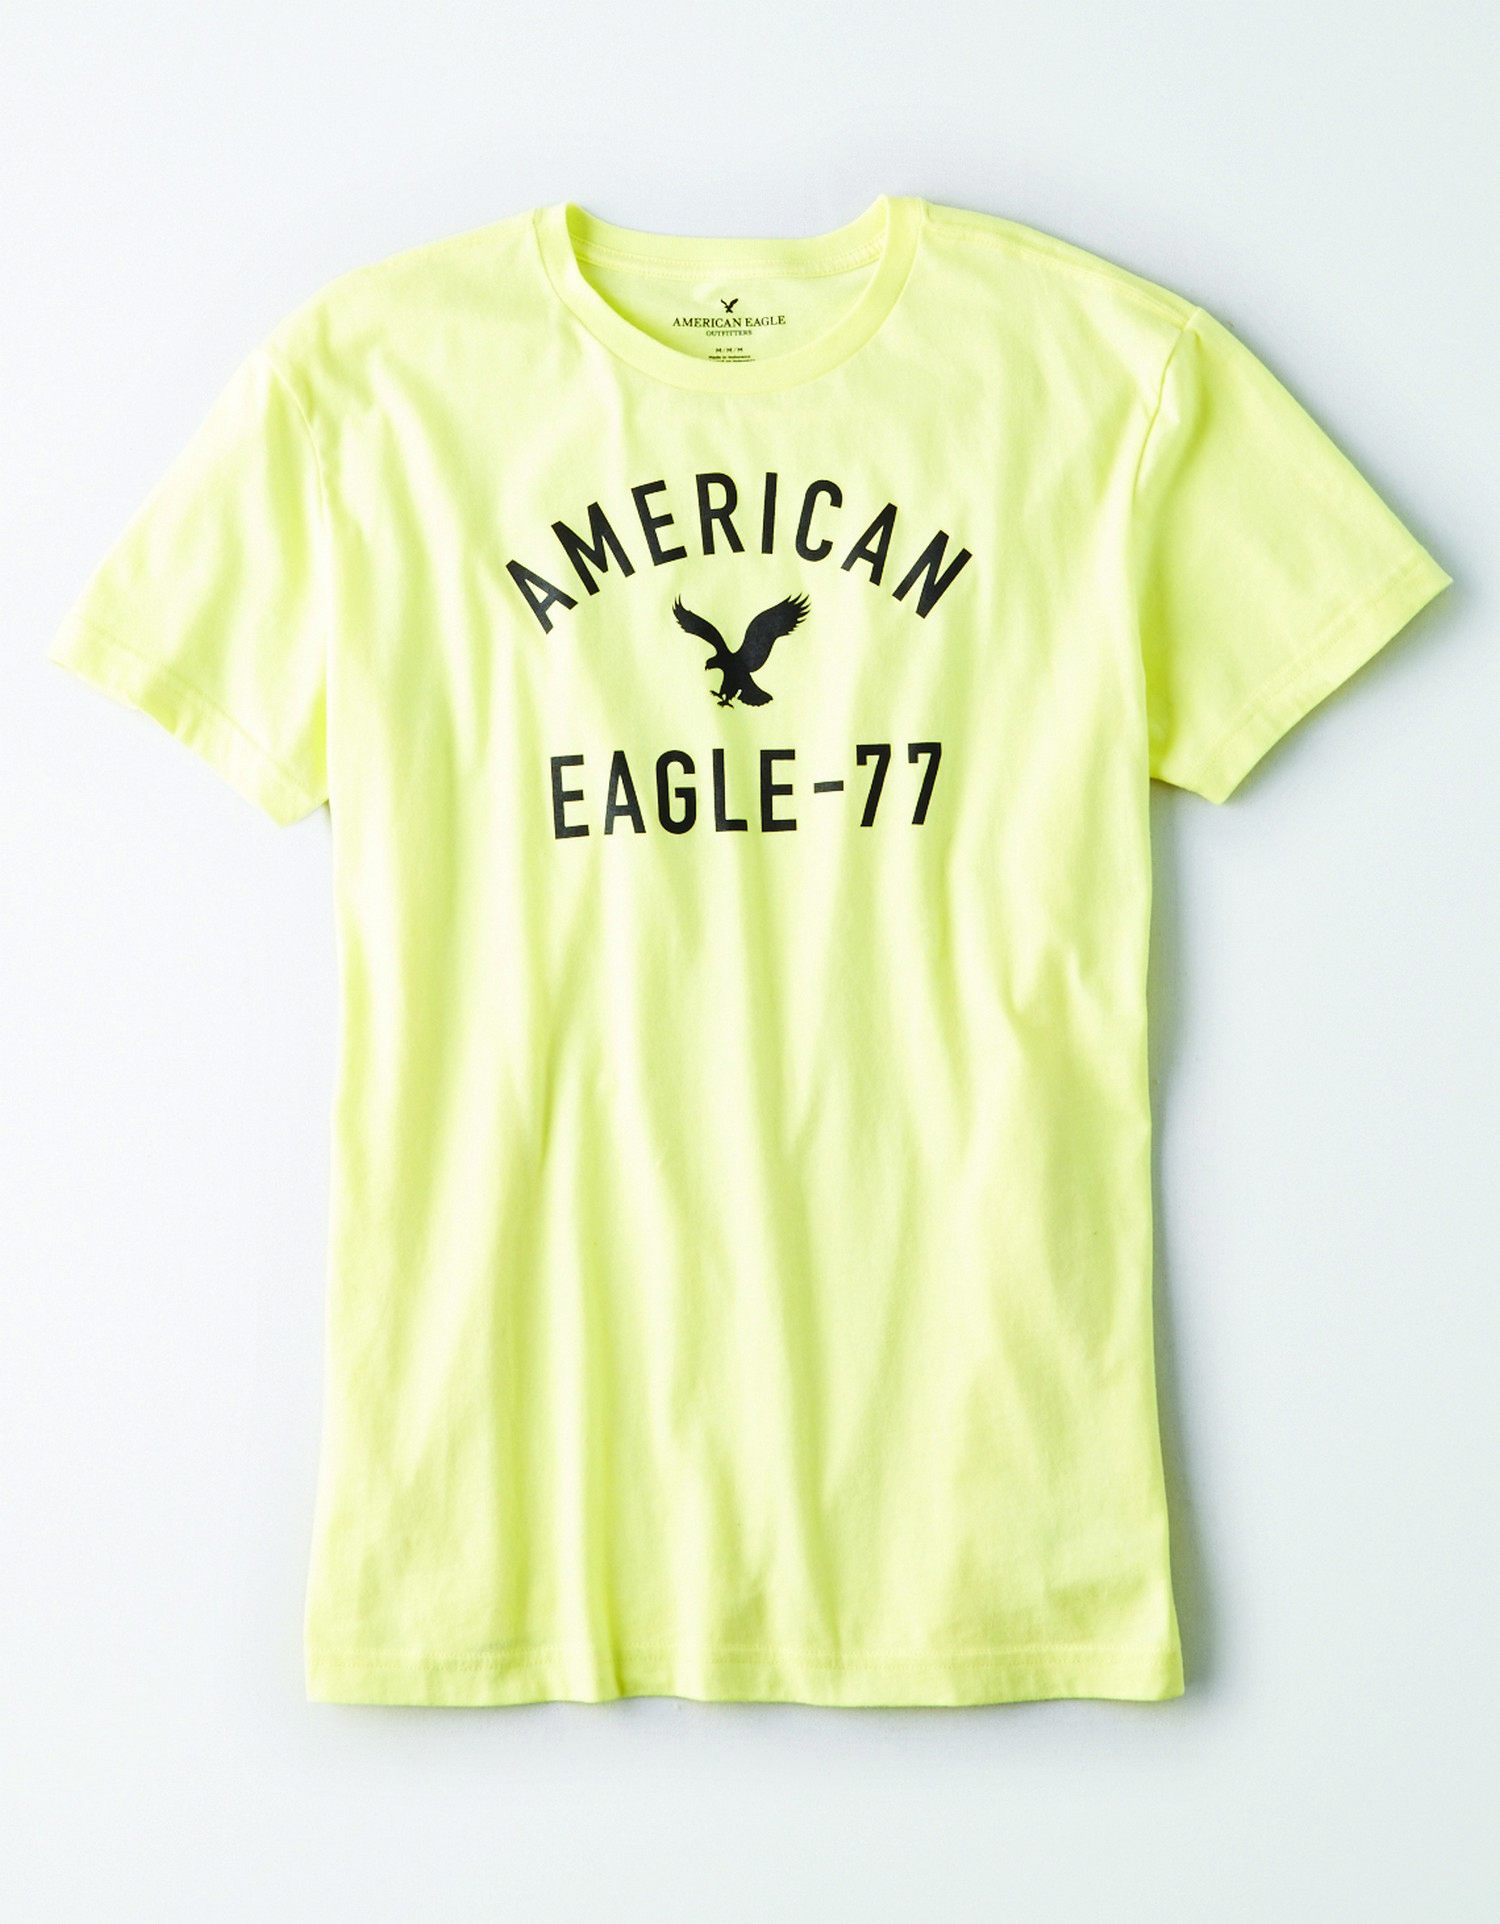 Ae- M-S/S VALUE TEE- light yellow with black AMERIVAN EAGLE -77 and eagle grapic on the front BG *Tracked